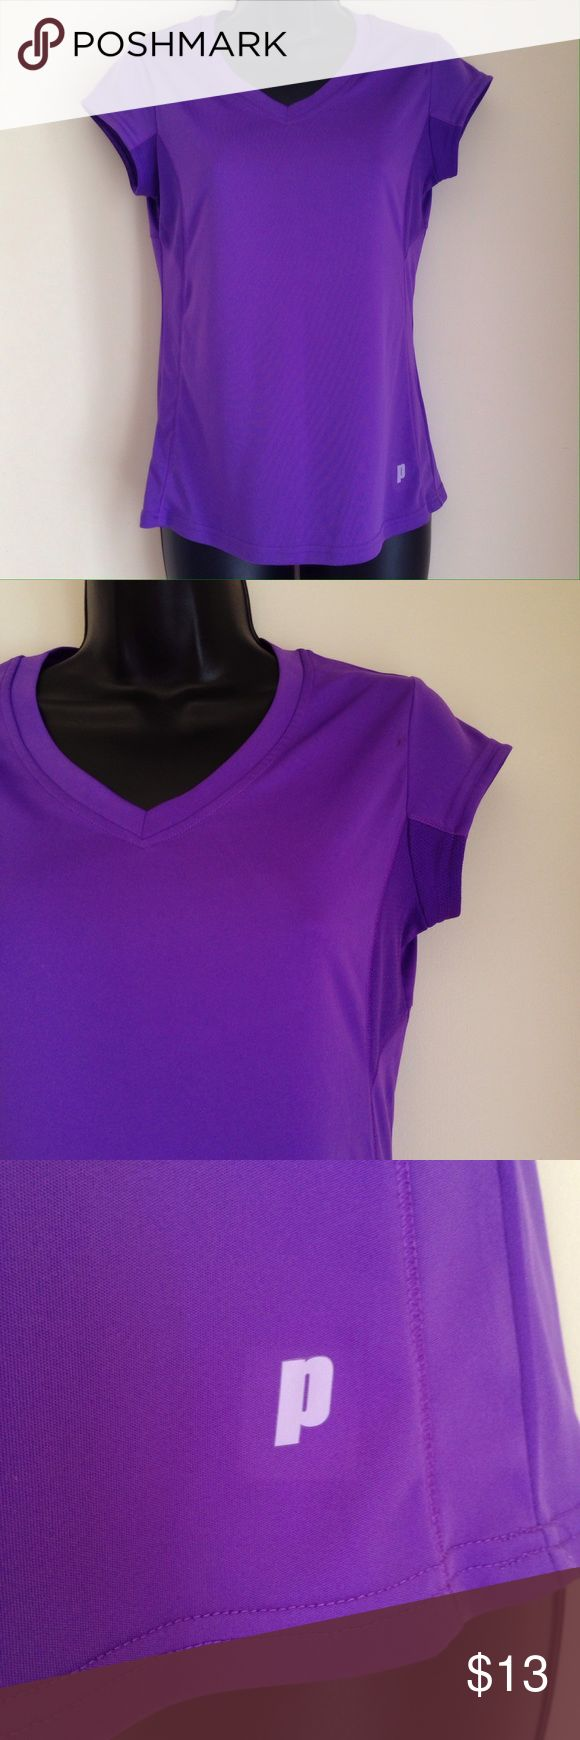 Plum Color Workout Top Dark plum/purple, women's athletic shirt. V neck, cap sleeves, moisture wicking material. Great used condition. No apparent flaws, stains, or defects. MAKE OFFERS! BUNDLE AND SAVE! Prince Tops Tees - Short Sleeve